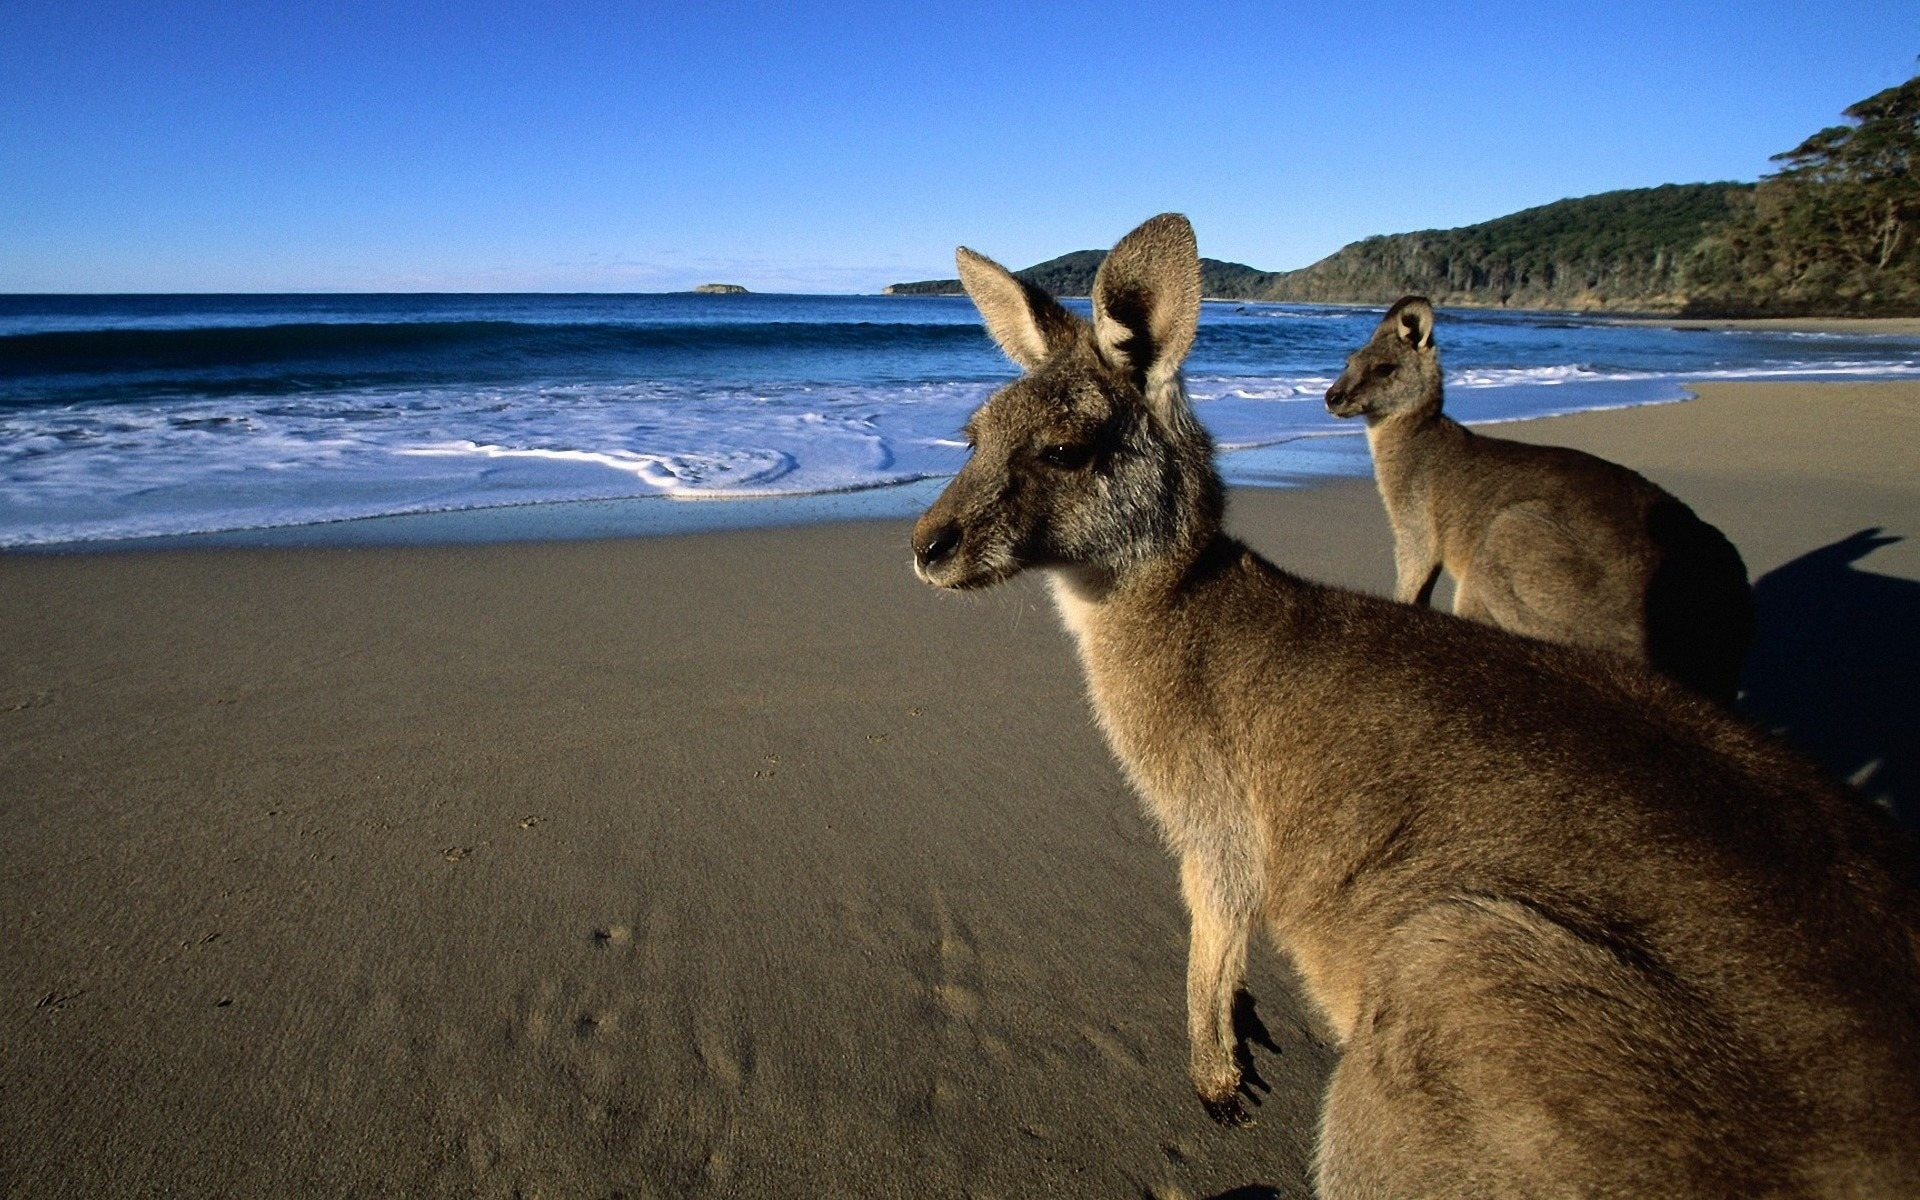 Kangaroo Wallpapers hd